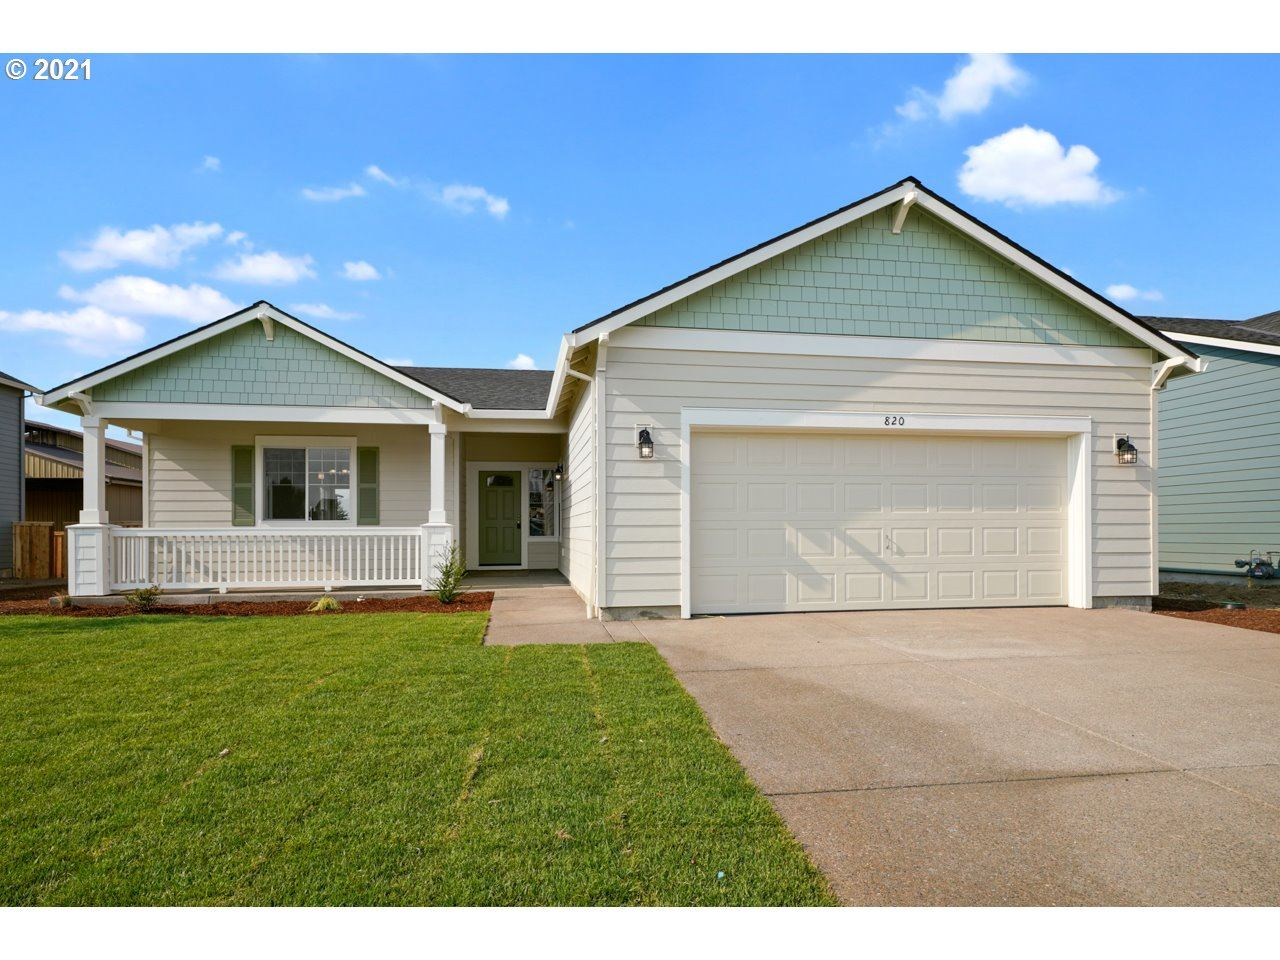 Photo of 1030 Winfield ST, Gervais, OR 97026 (MLS # 21611456)